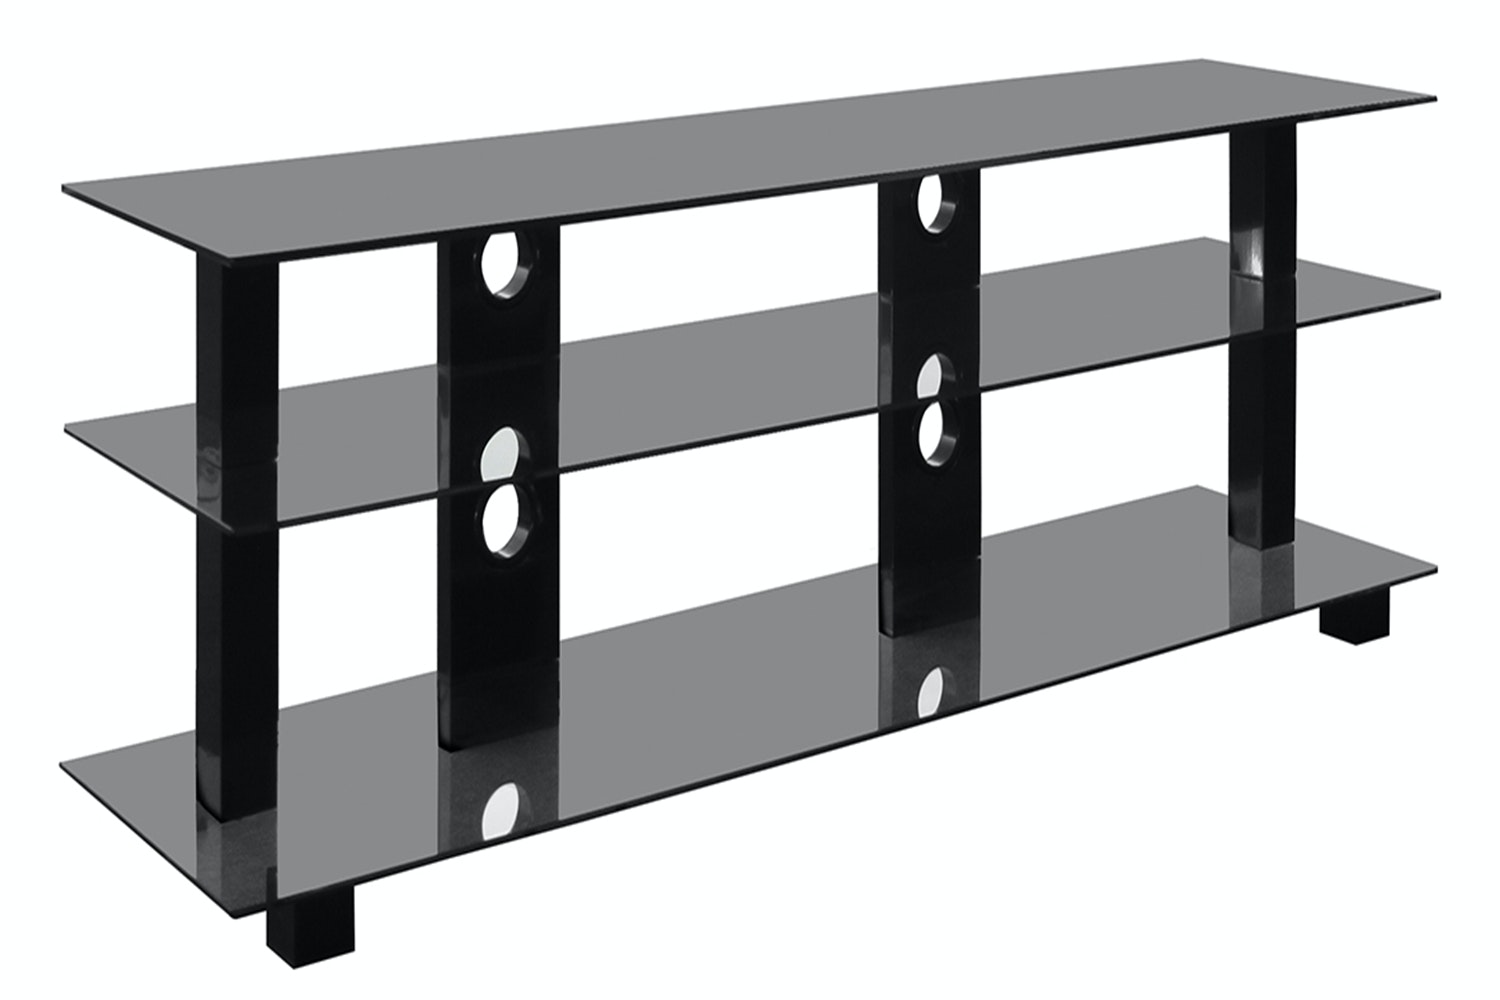 Kaiapoi 3 Shelf 42-65 TV Table Black by Pudney and Lee